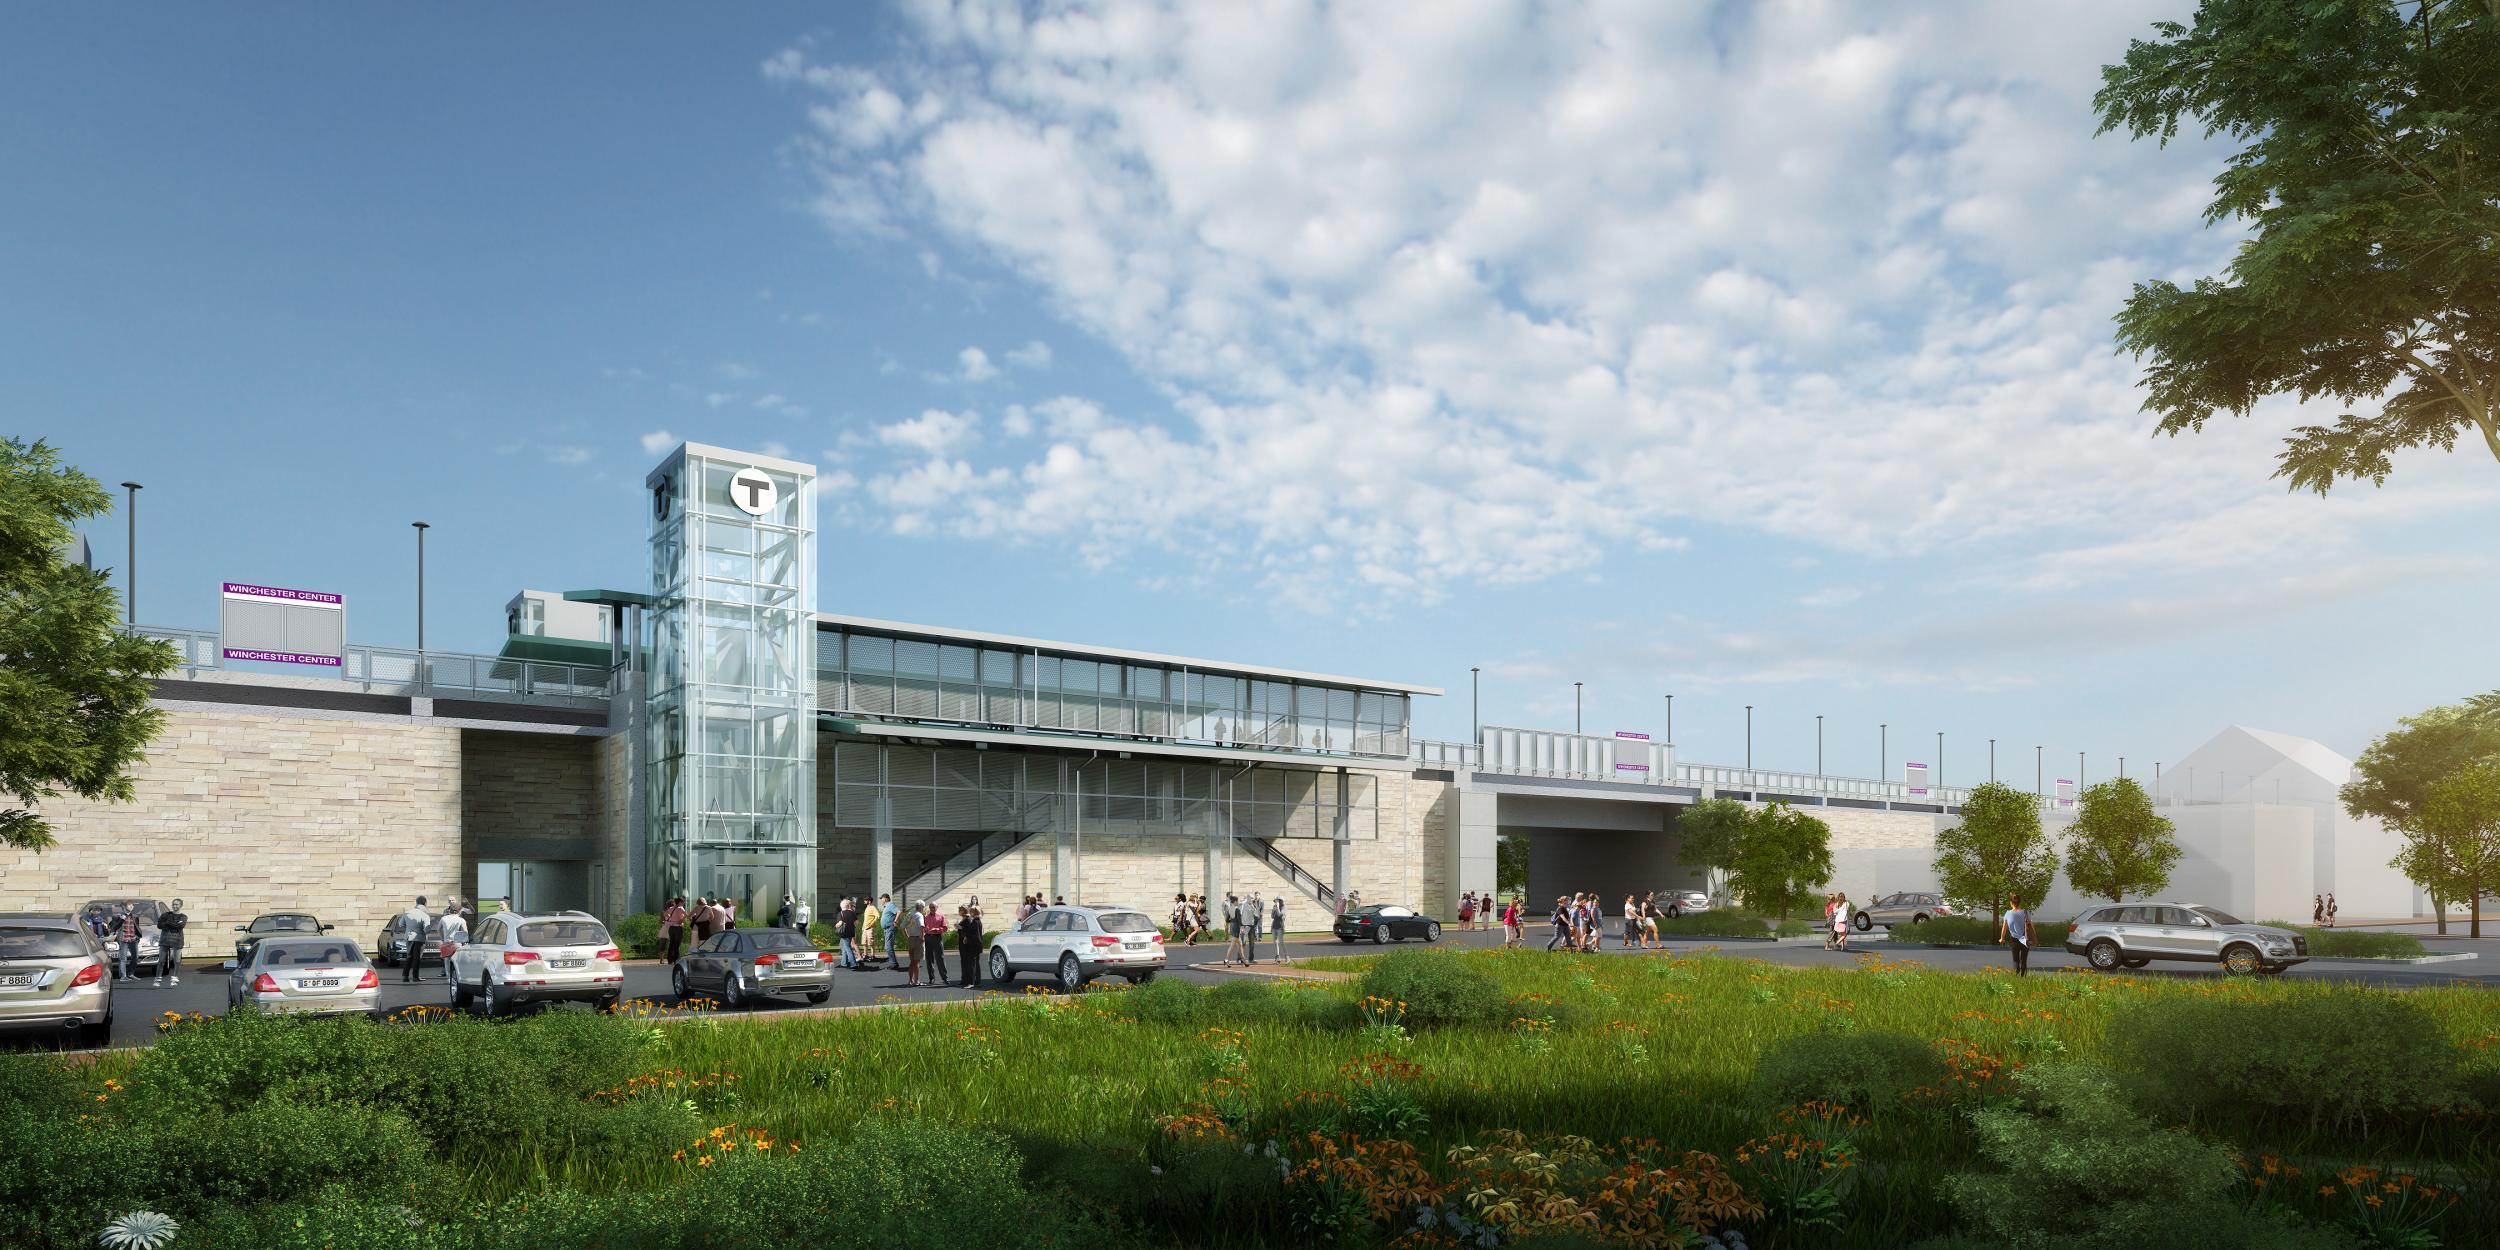 A rendering shows what Winchester Station will look like after accessibility improvements, with a new elevator, station signage, people in the parking lot